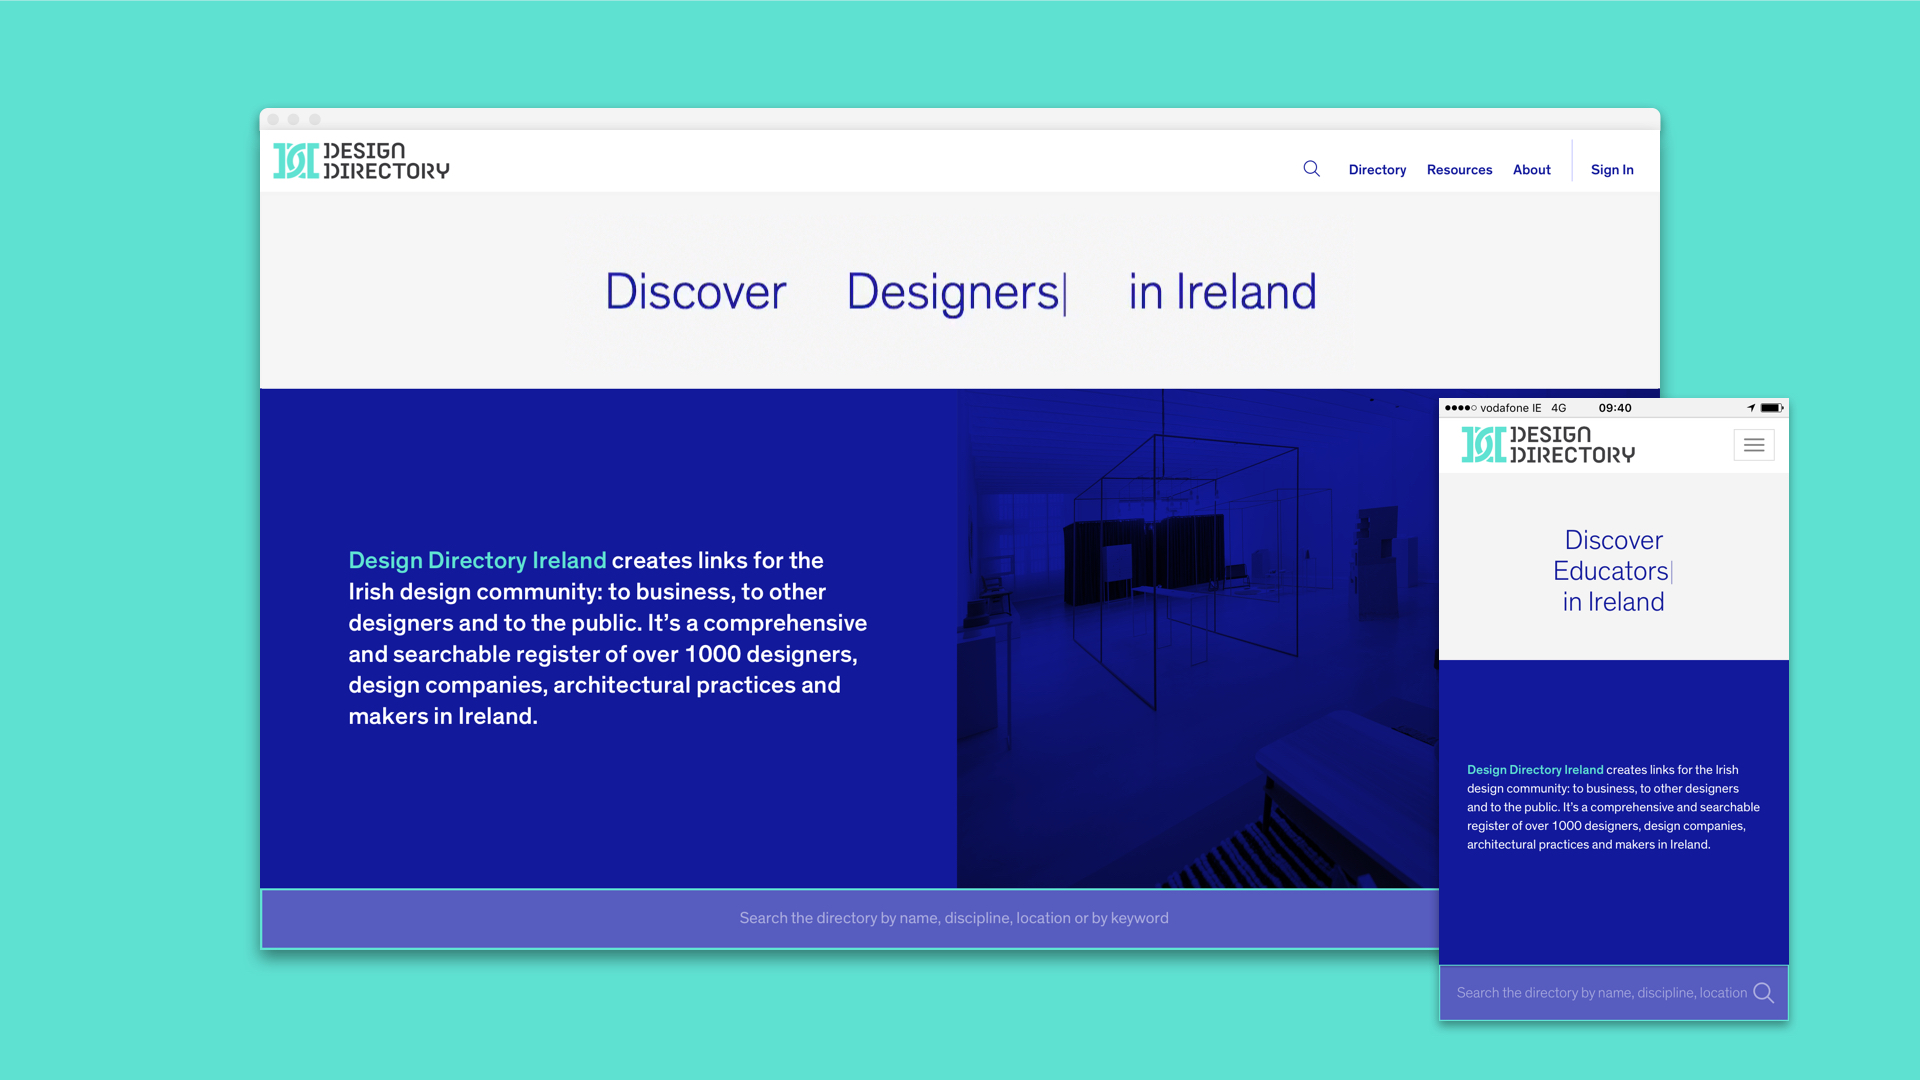 Cover image: Design Directory Ireland